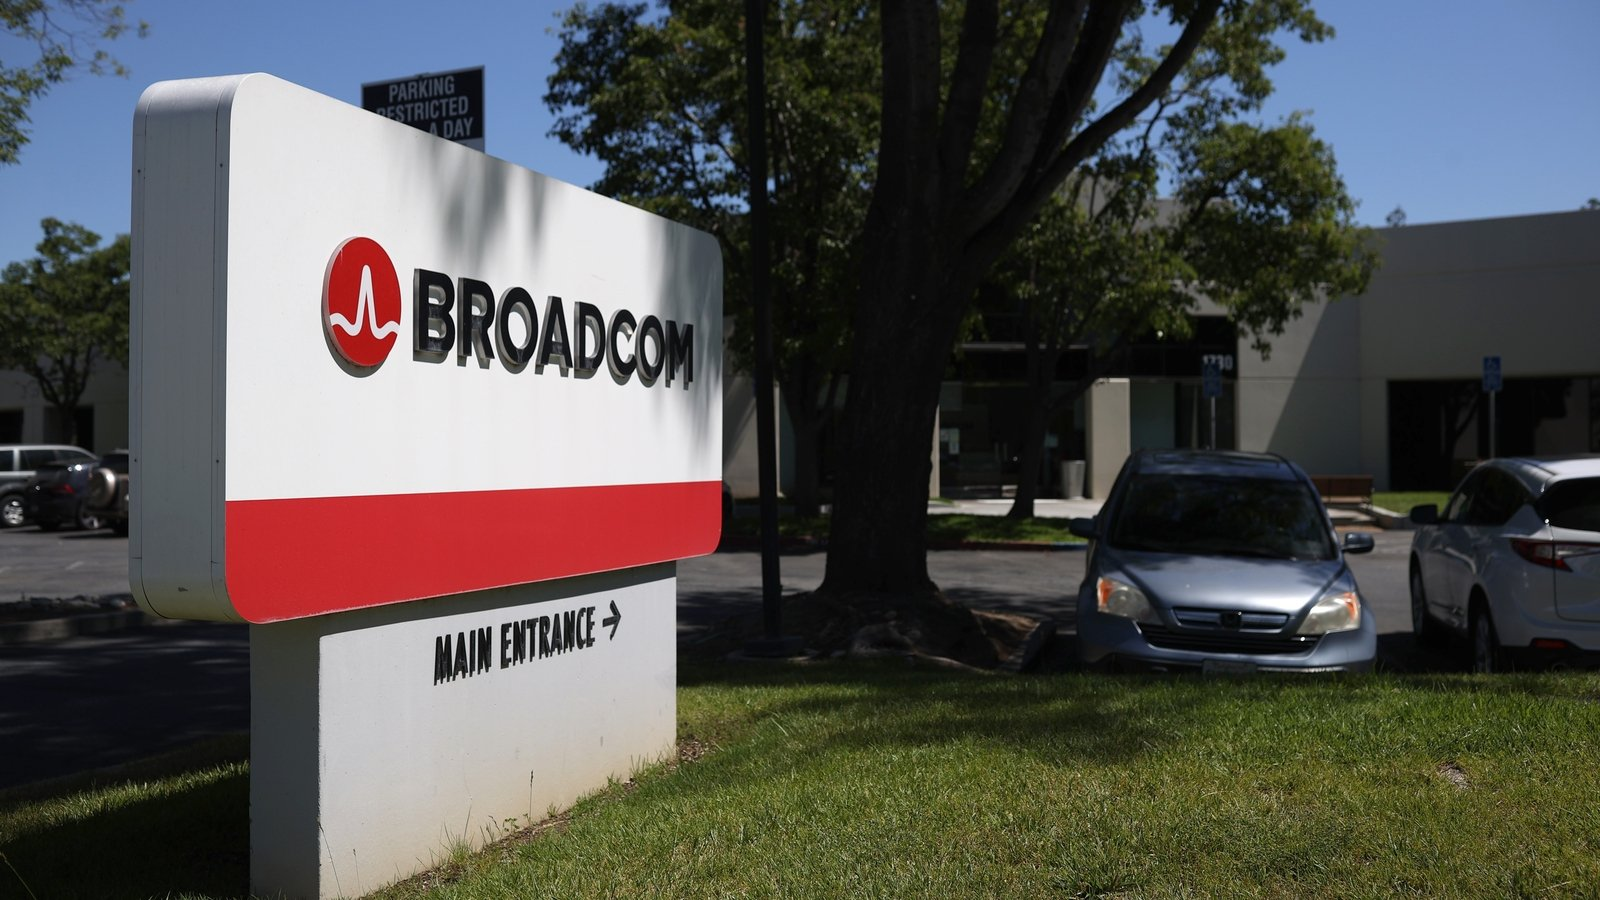 Broadcom is About to Buy SAS? In Talks To Buy Big Data Analytics Giant SAS Institute [UPDATED]